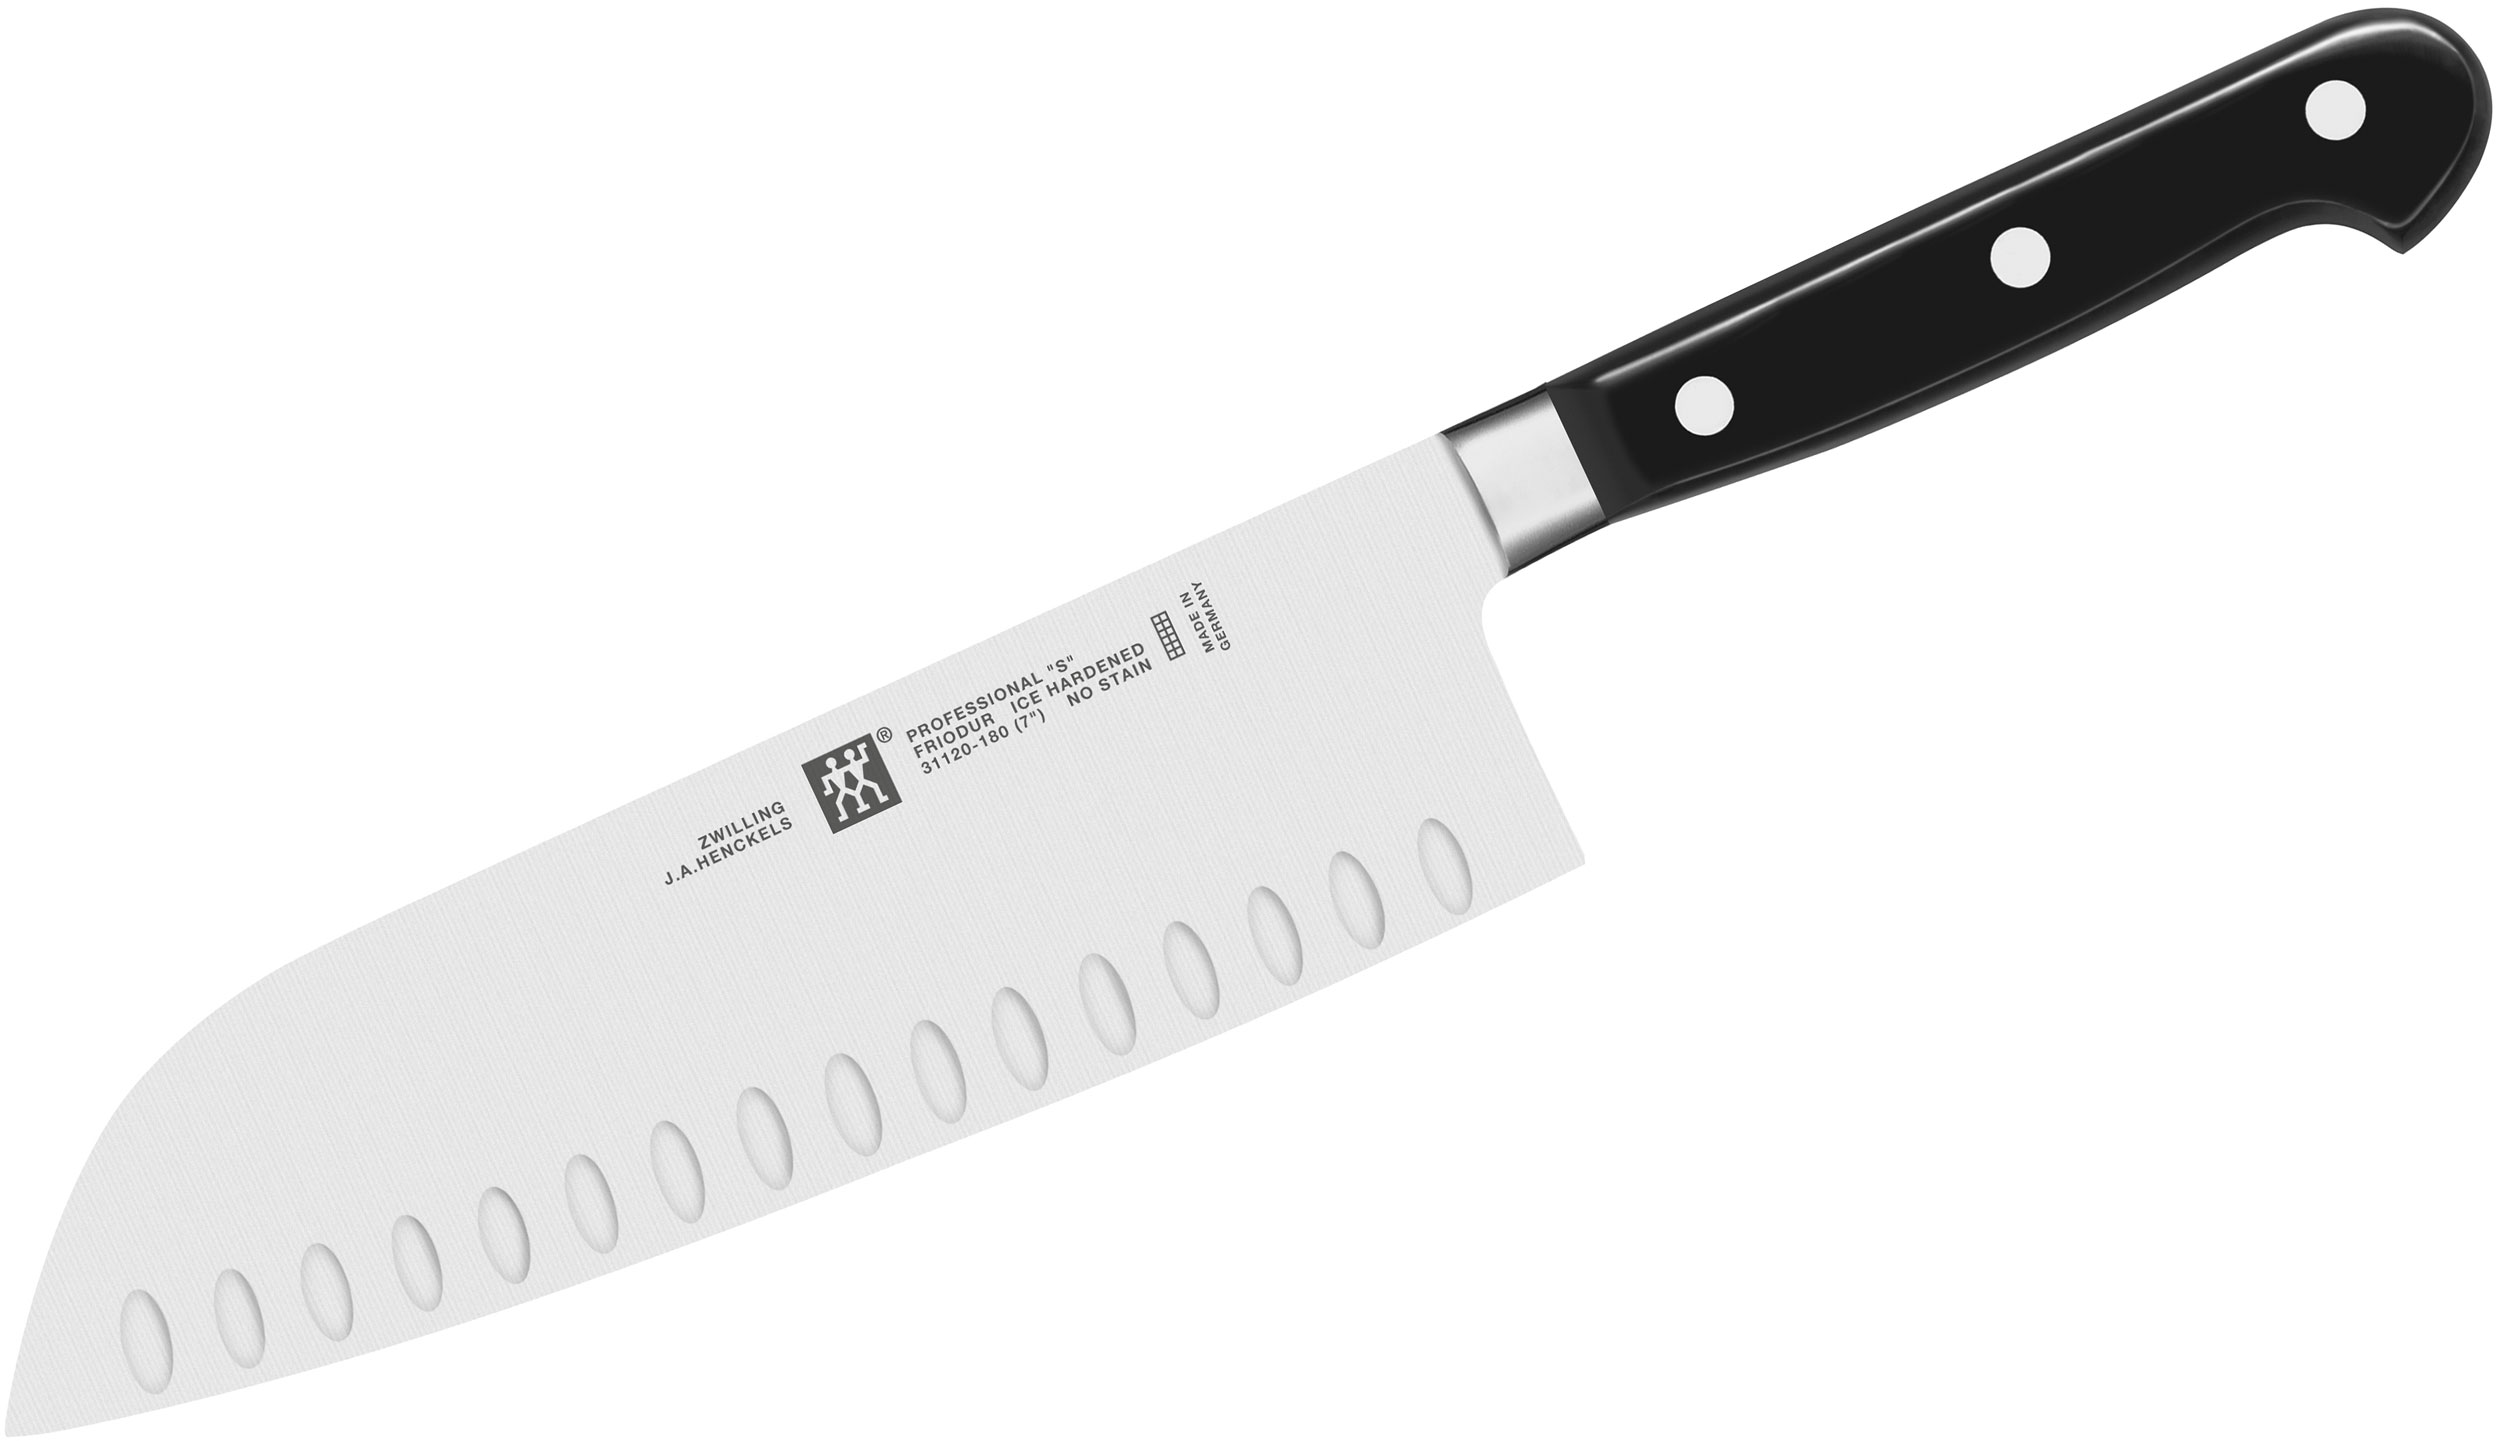 Zwilling J.A. Henckels TWIN Pro 'S' 7 inch Santoku Knife, Hollow Edge